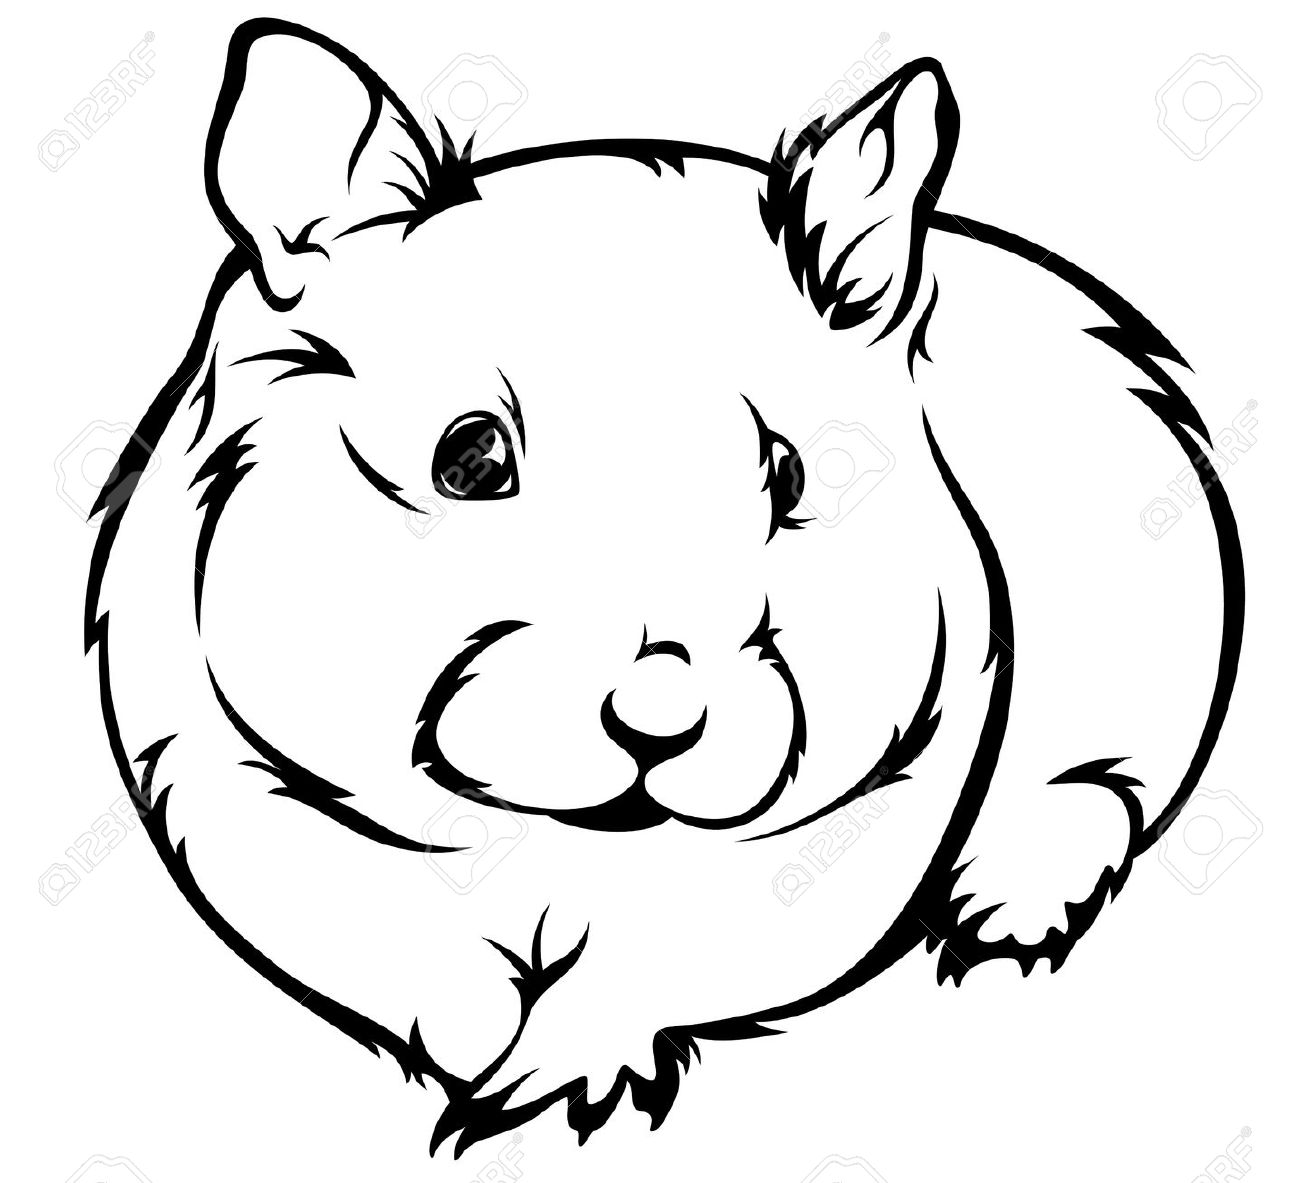 Hamster clipart #4, Download drawings